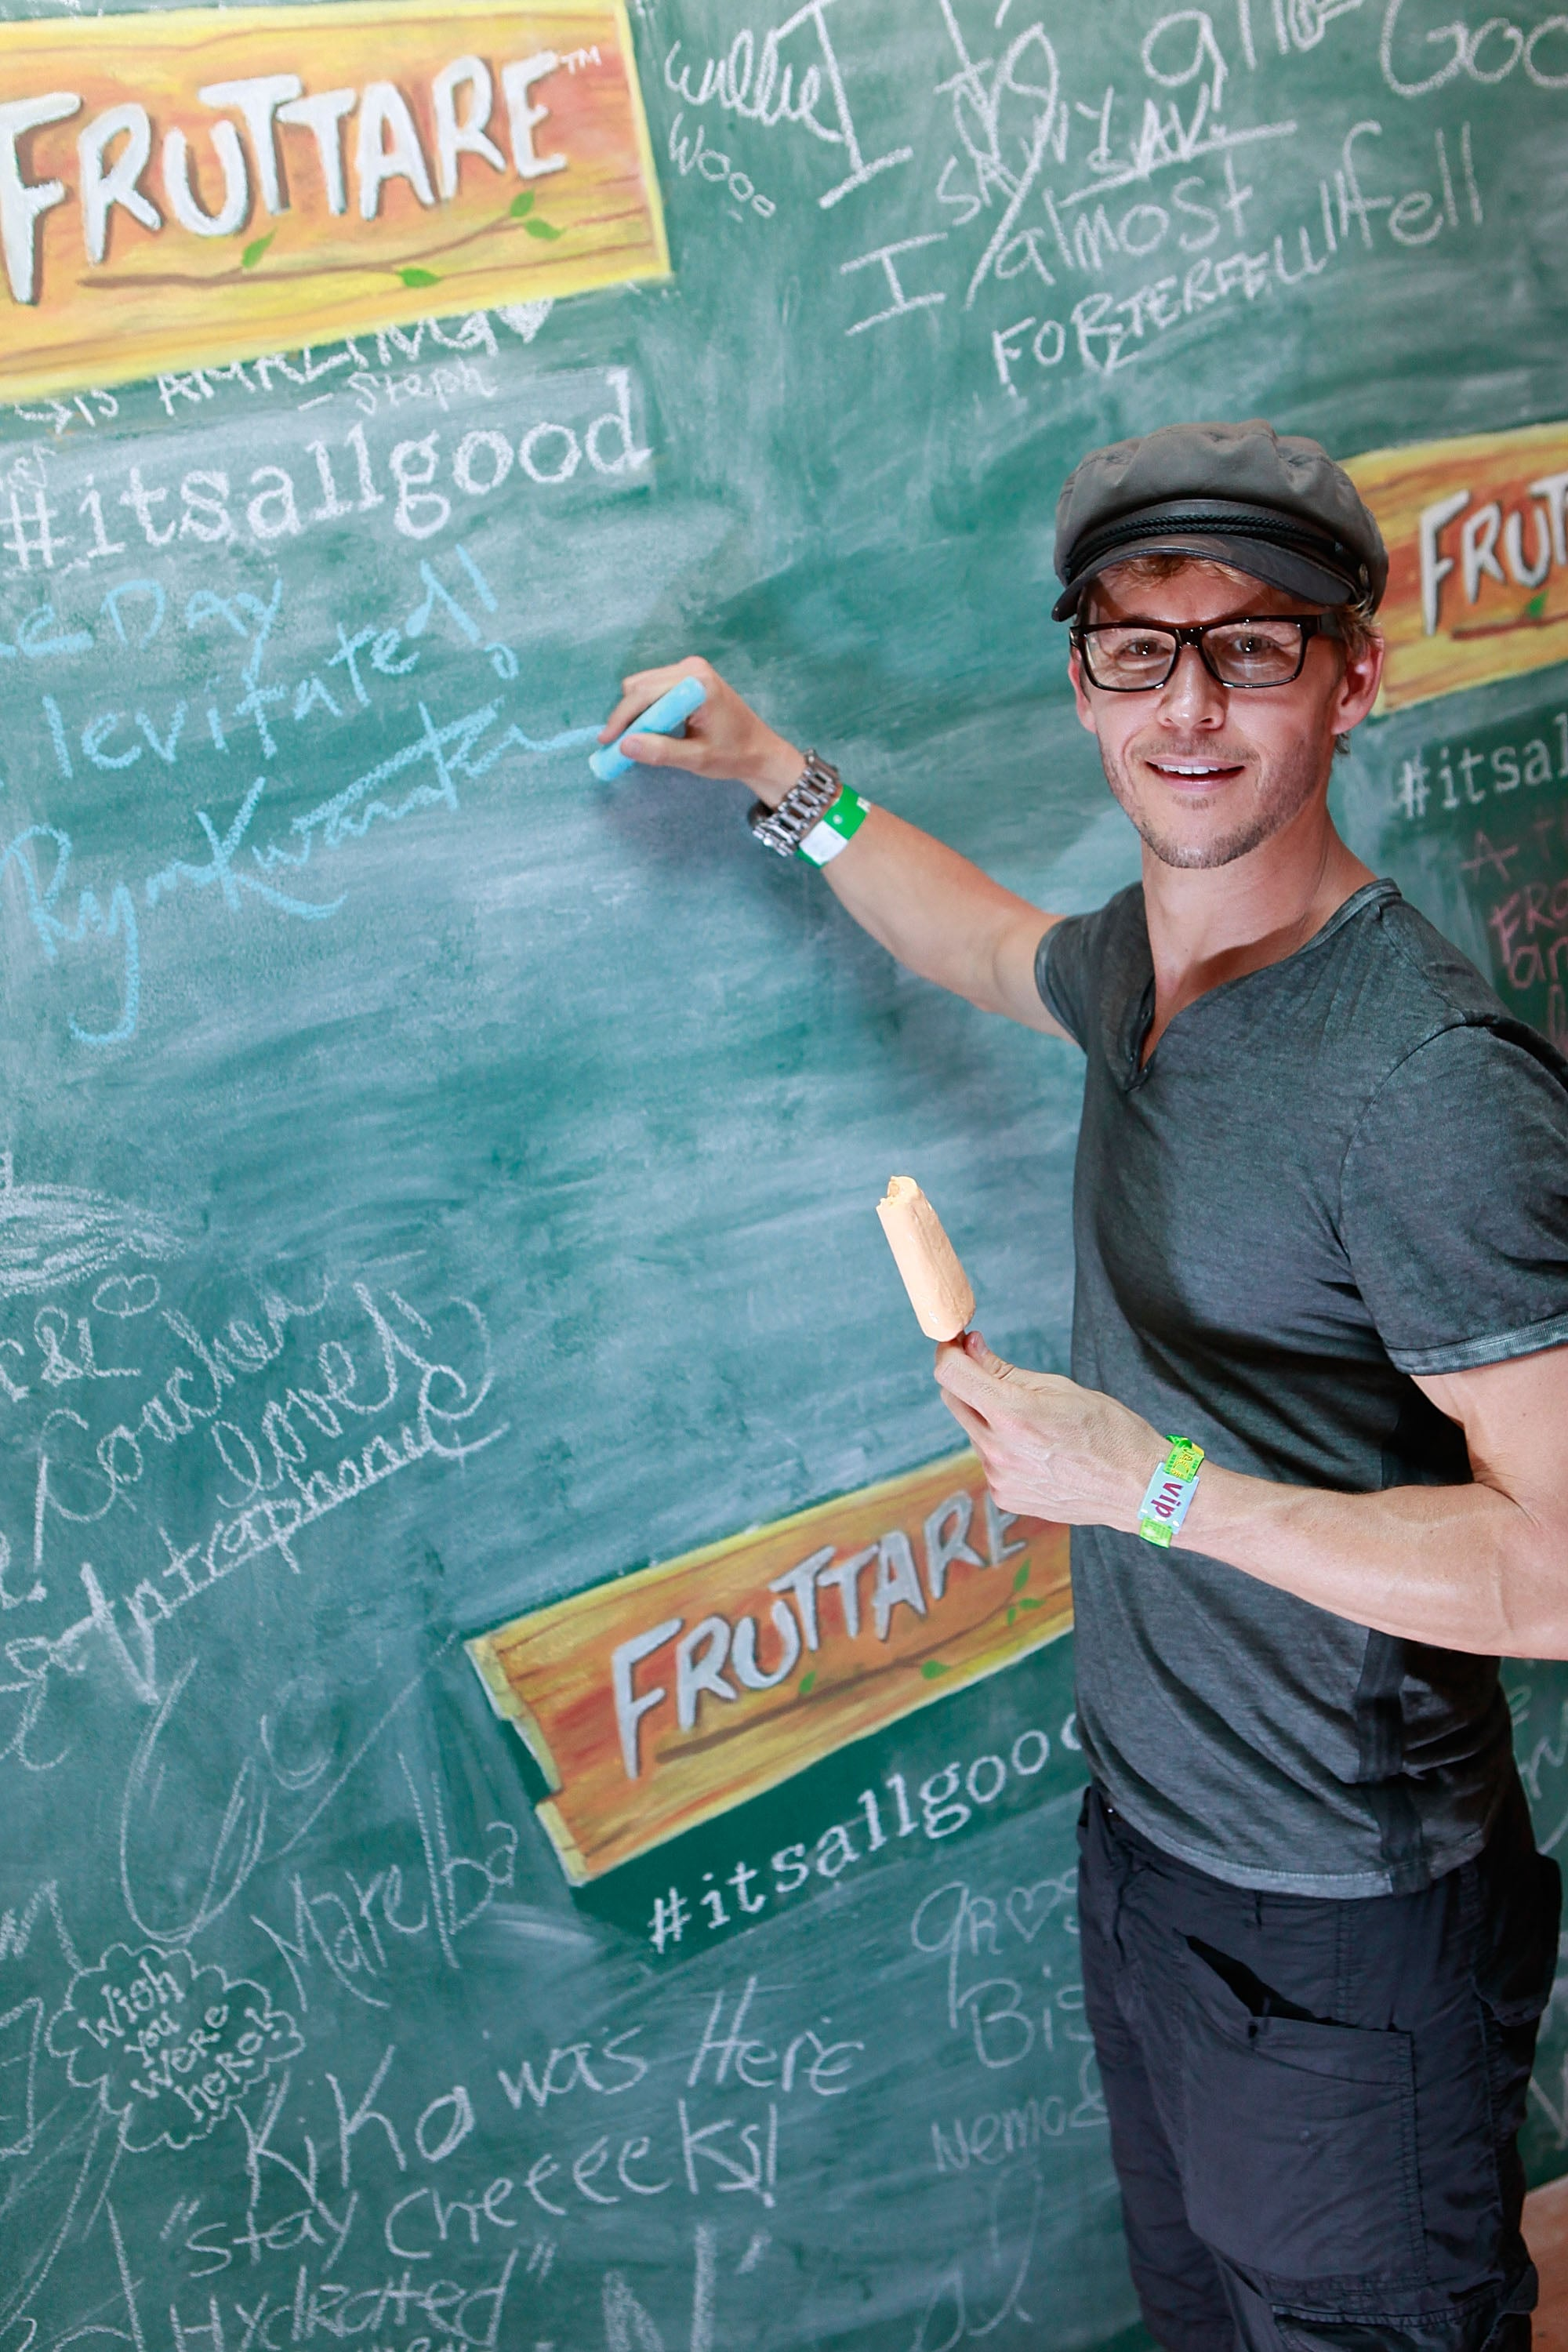 Ryan Kwanten stopped by the Fruttare Hangout at Coachella in 2013.